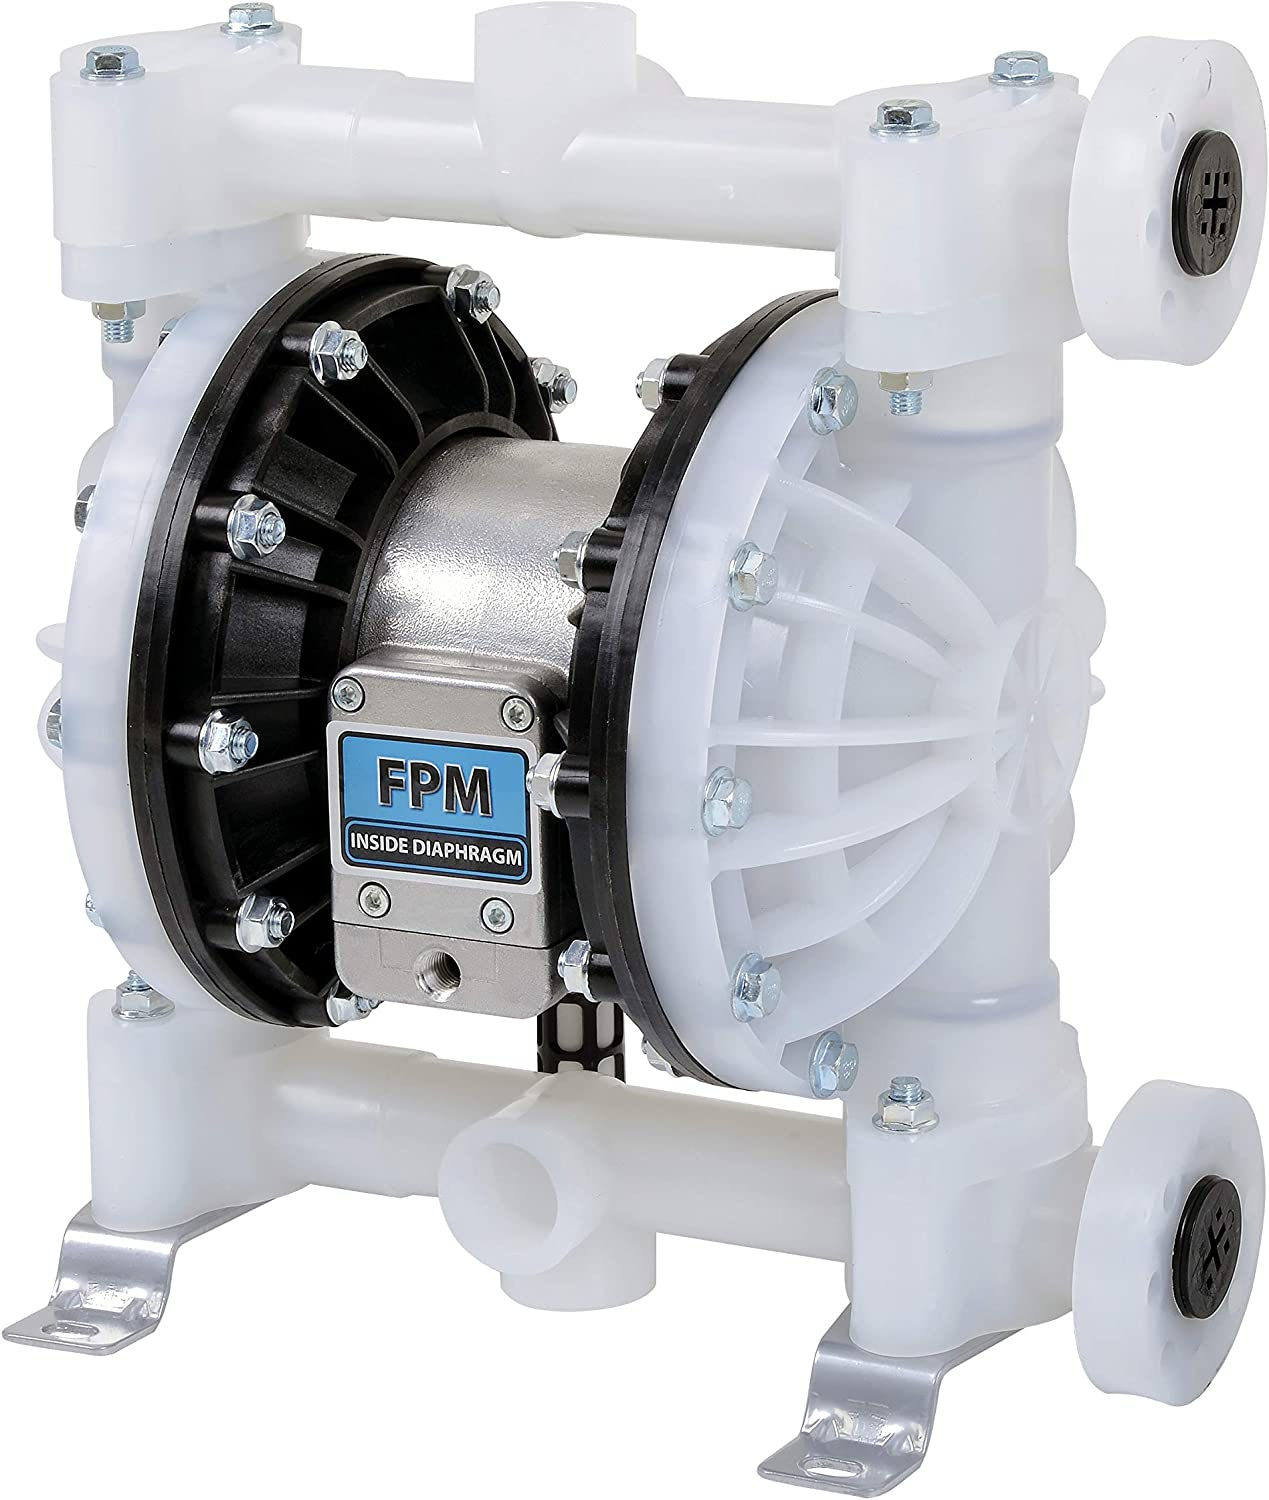 Fuelworks Double Diaphragm Transfer Pump Air Operated Pneumatic 1 Inch Fpm Fkm 24gpm 90lpm For Bio Diesel Windscreen And Similar Chemicals Home Improvement